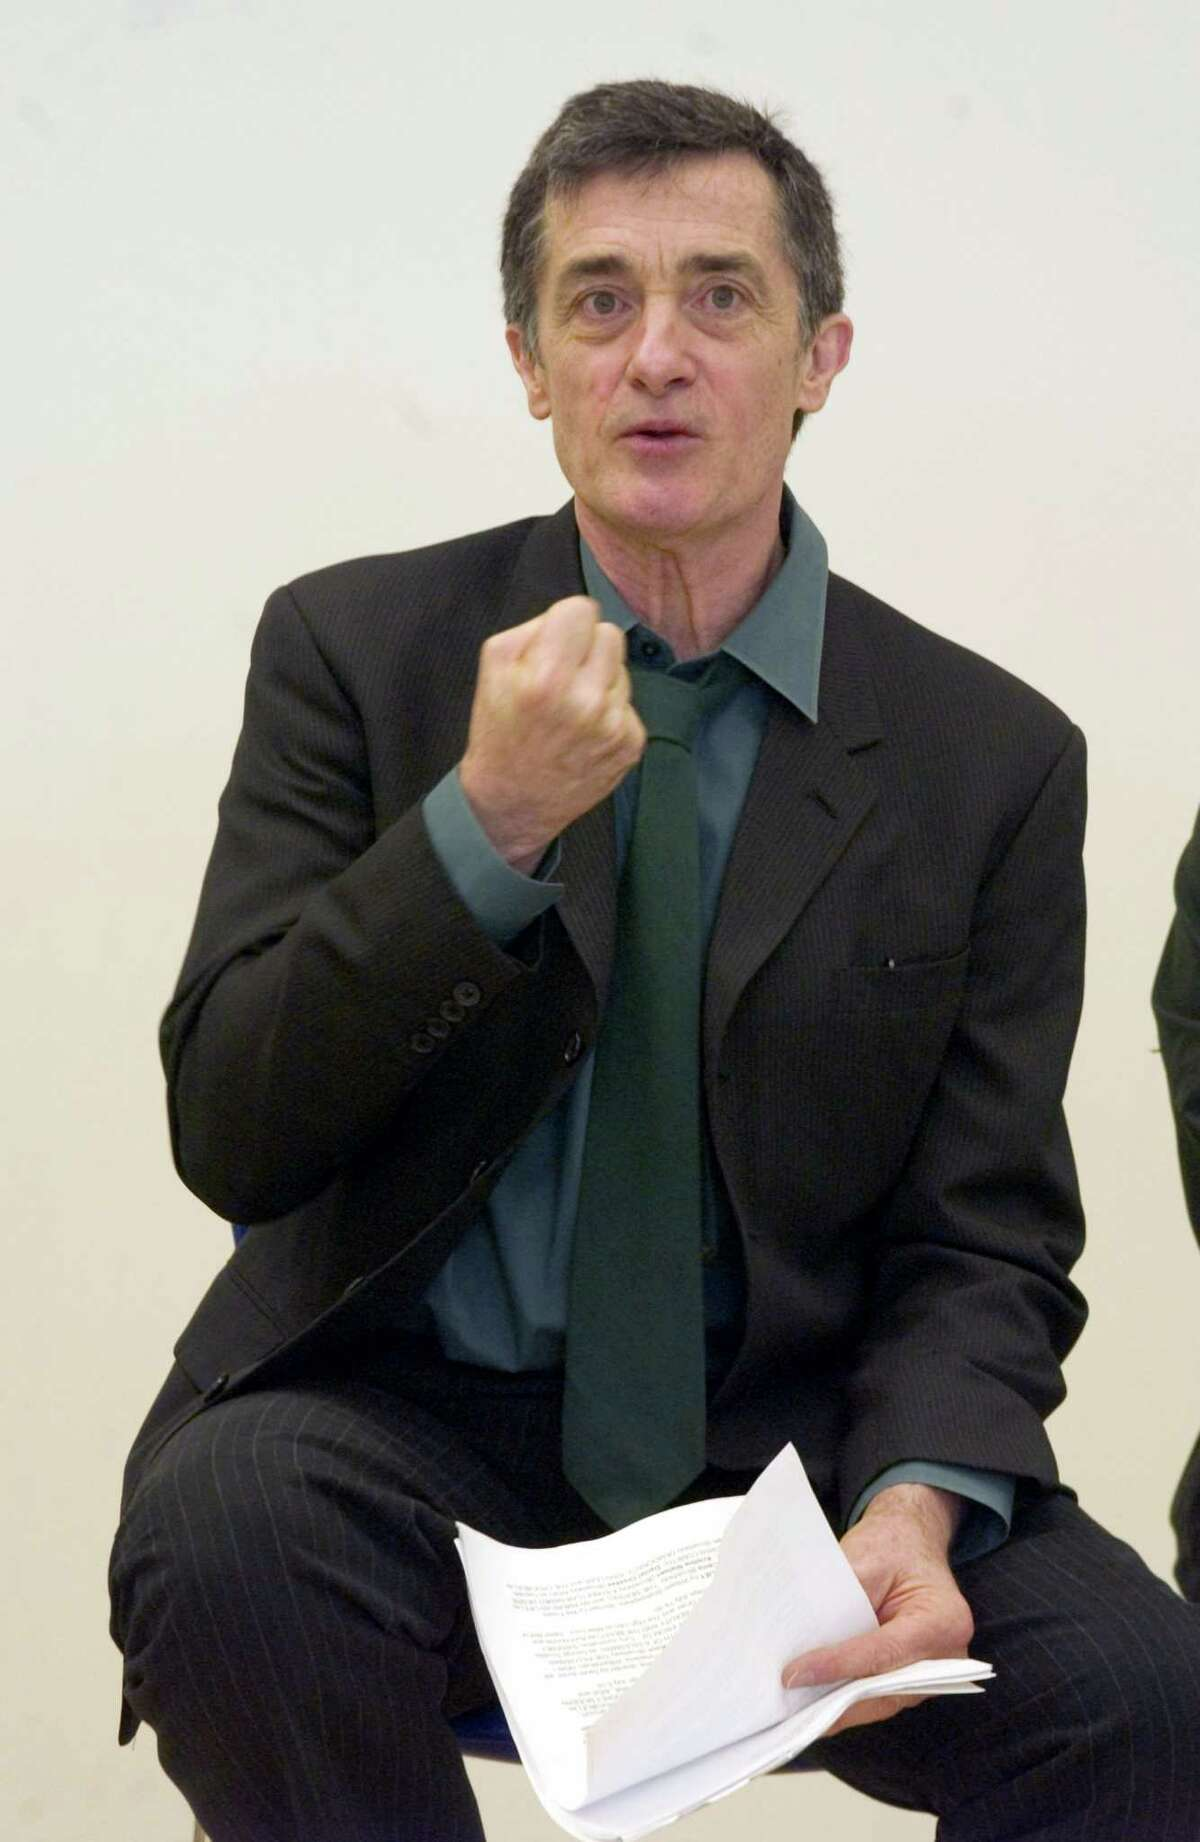 FILE - In this May 24, 2006, file photo, Roger Rees, artistic director of the Williamstown Theatre Festival in Williamstown, Mass., introduces the 2006 season during a news conference in New York. Rees, the Tony Award-winning Welsh-born actor and director who appeared on TVís ìThe West Wingî and was a mainstay on Broadway playing Gomez in ìThe Addams Familyî and Chita Riveraís doomed lover in ìThe Visit,î died Friday night, July 10, 2015, his representative Rick Miramontez said. He was 71. (AP Photo/Jim Cooper, File)